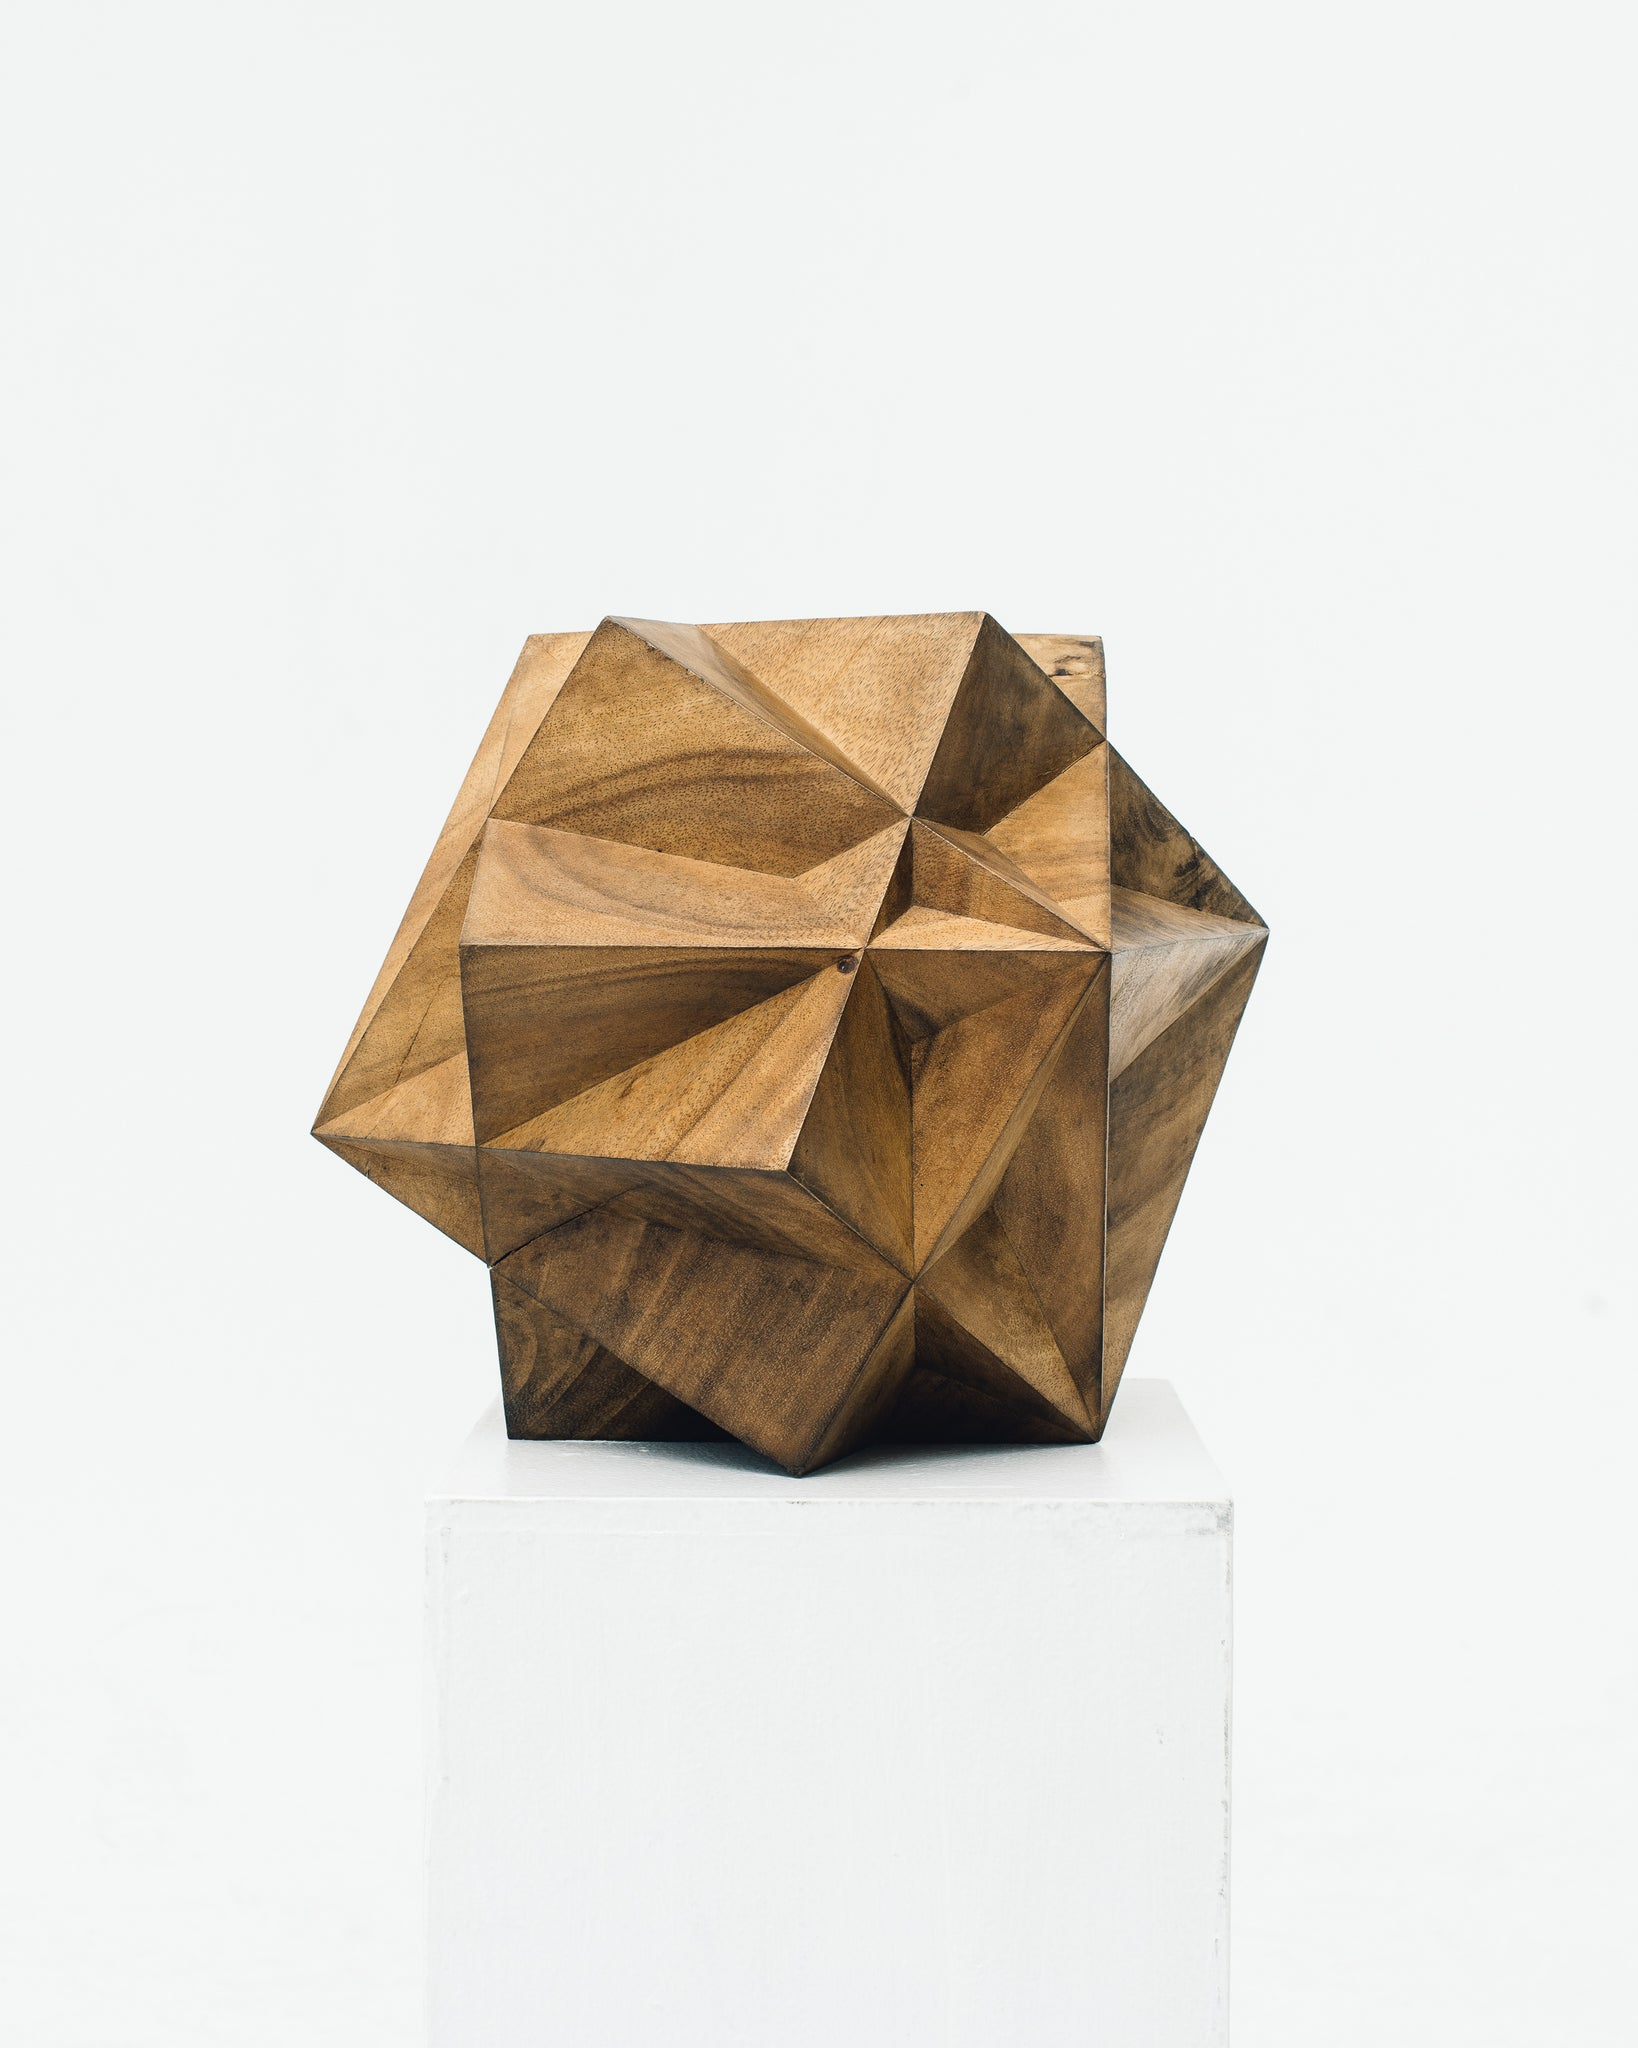 Aleph Geddis Wood Sculpture AG-1018